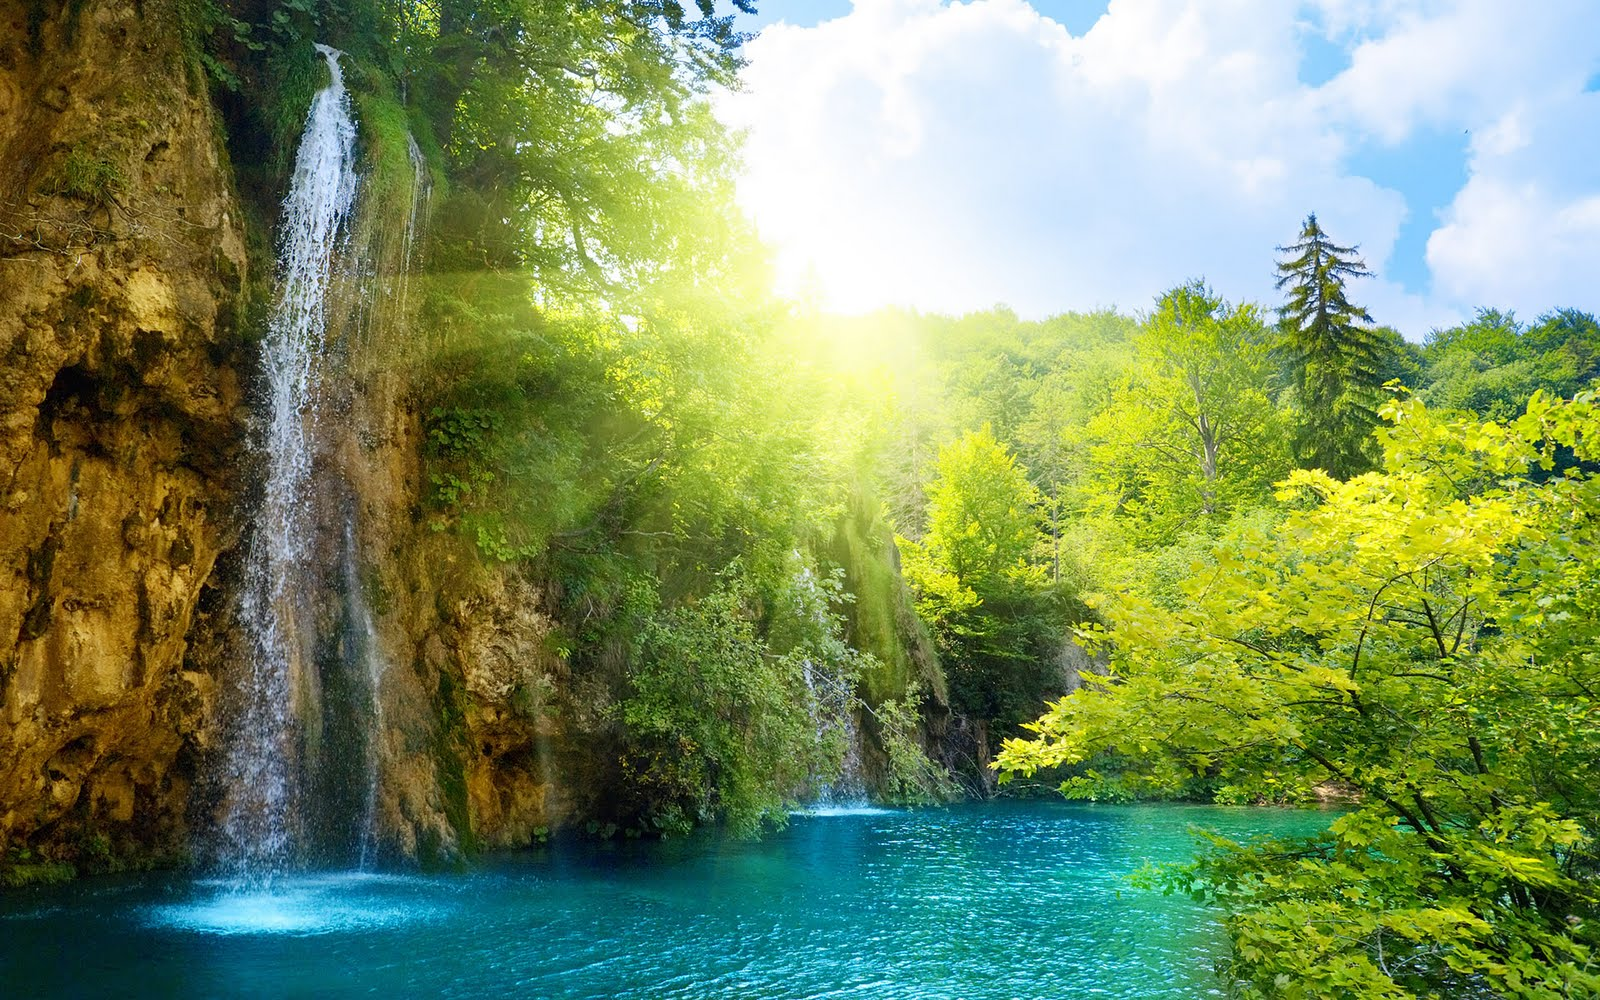 Nature images beautiful cool wallpapers - Best Top Desktop Beautiful Nature Wallpapers Hd Nature